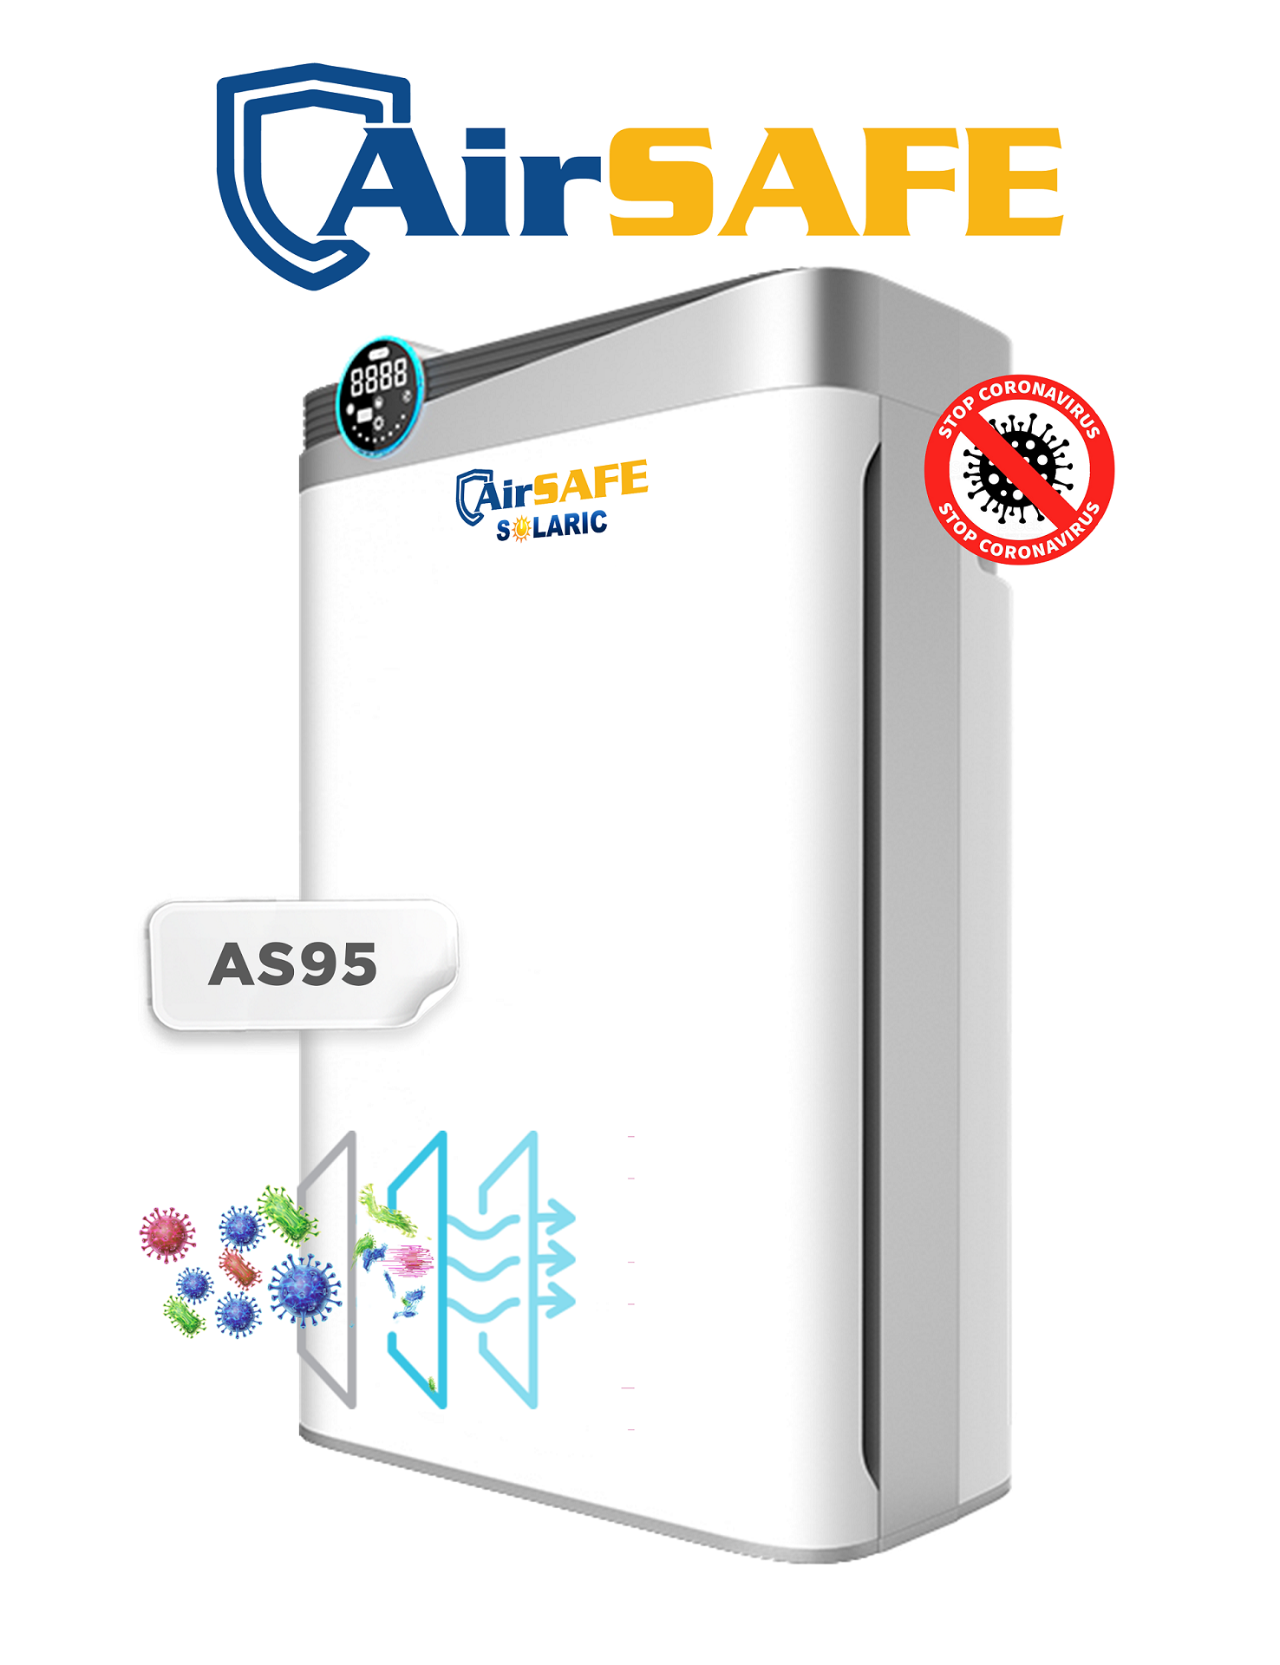 The AirSAFE95 (AS95)